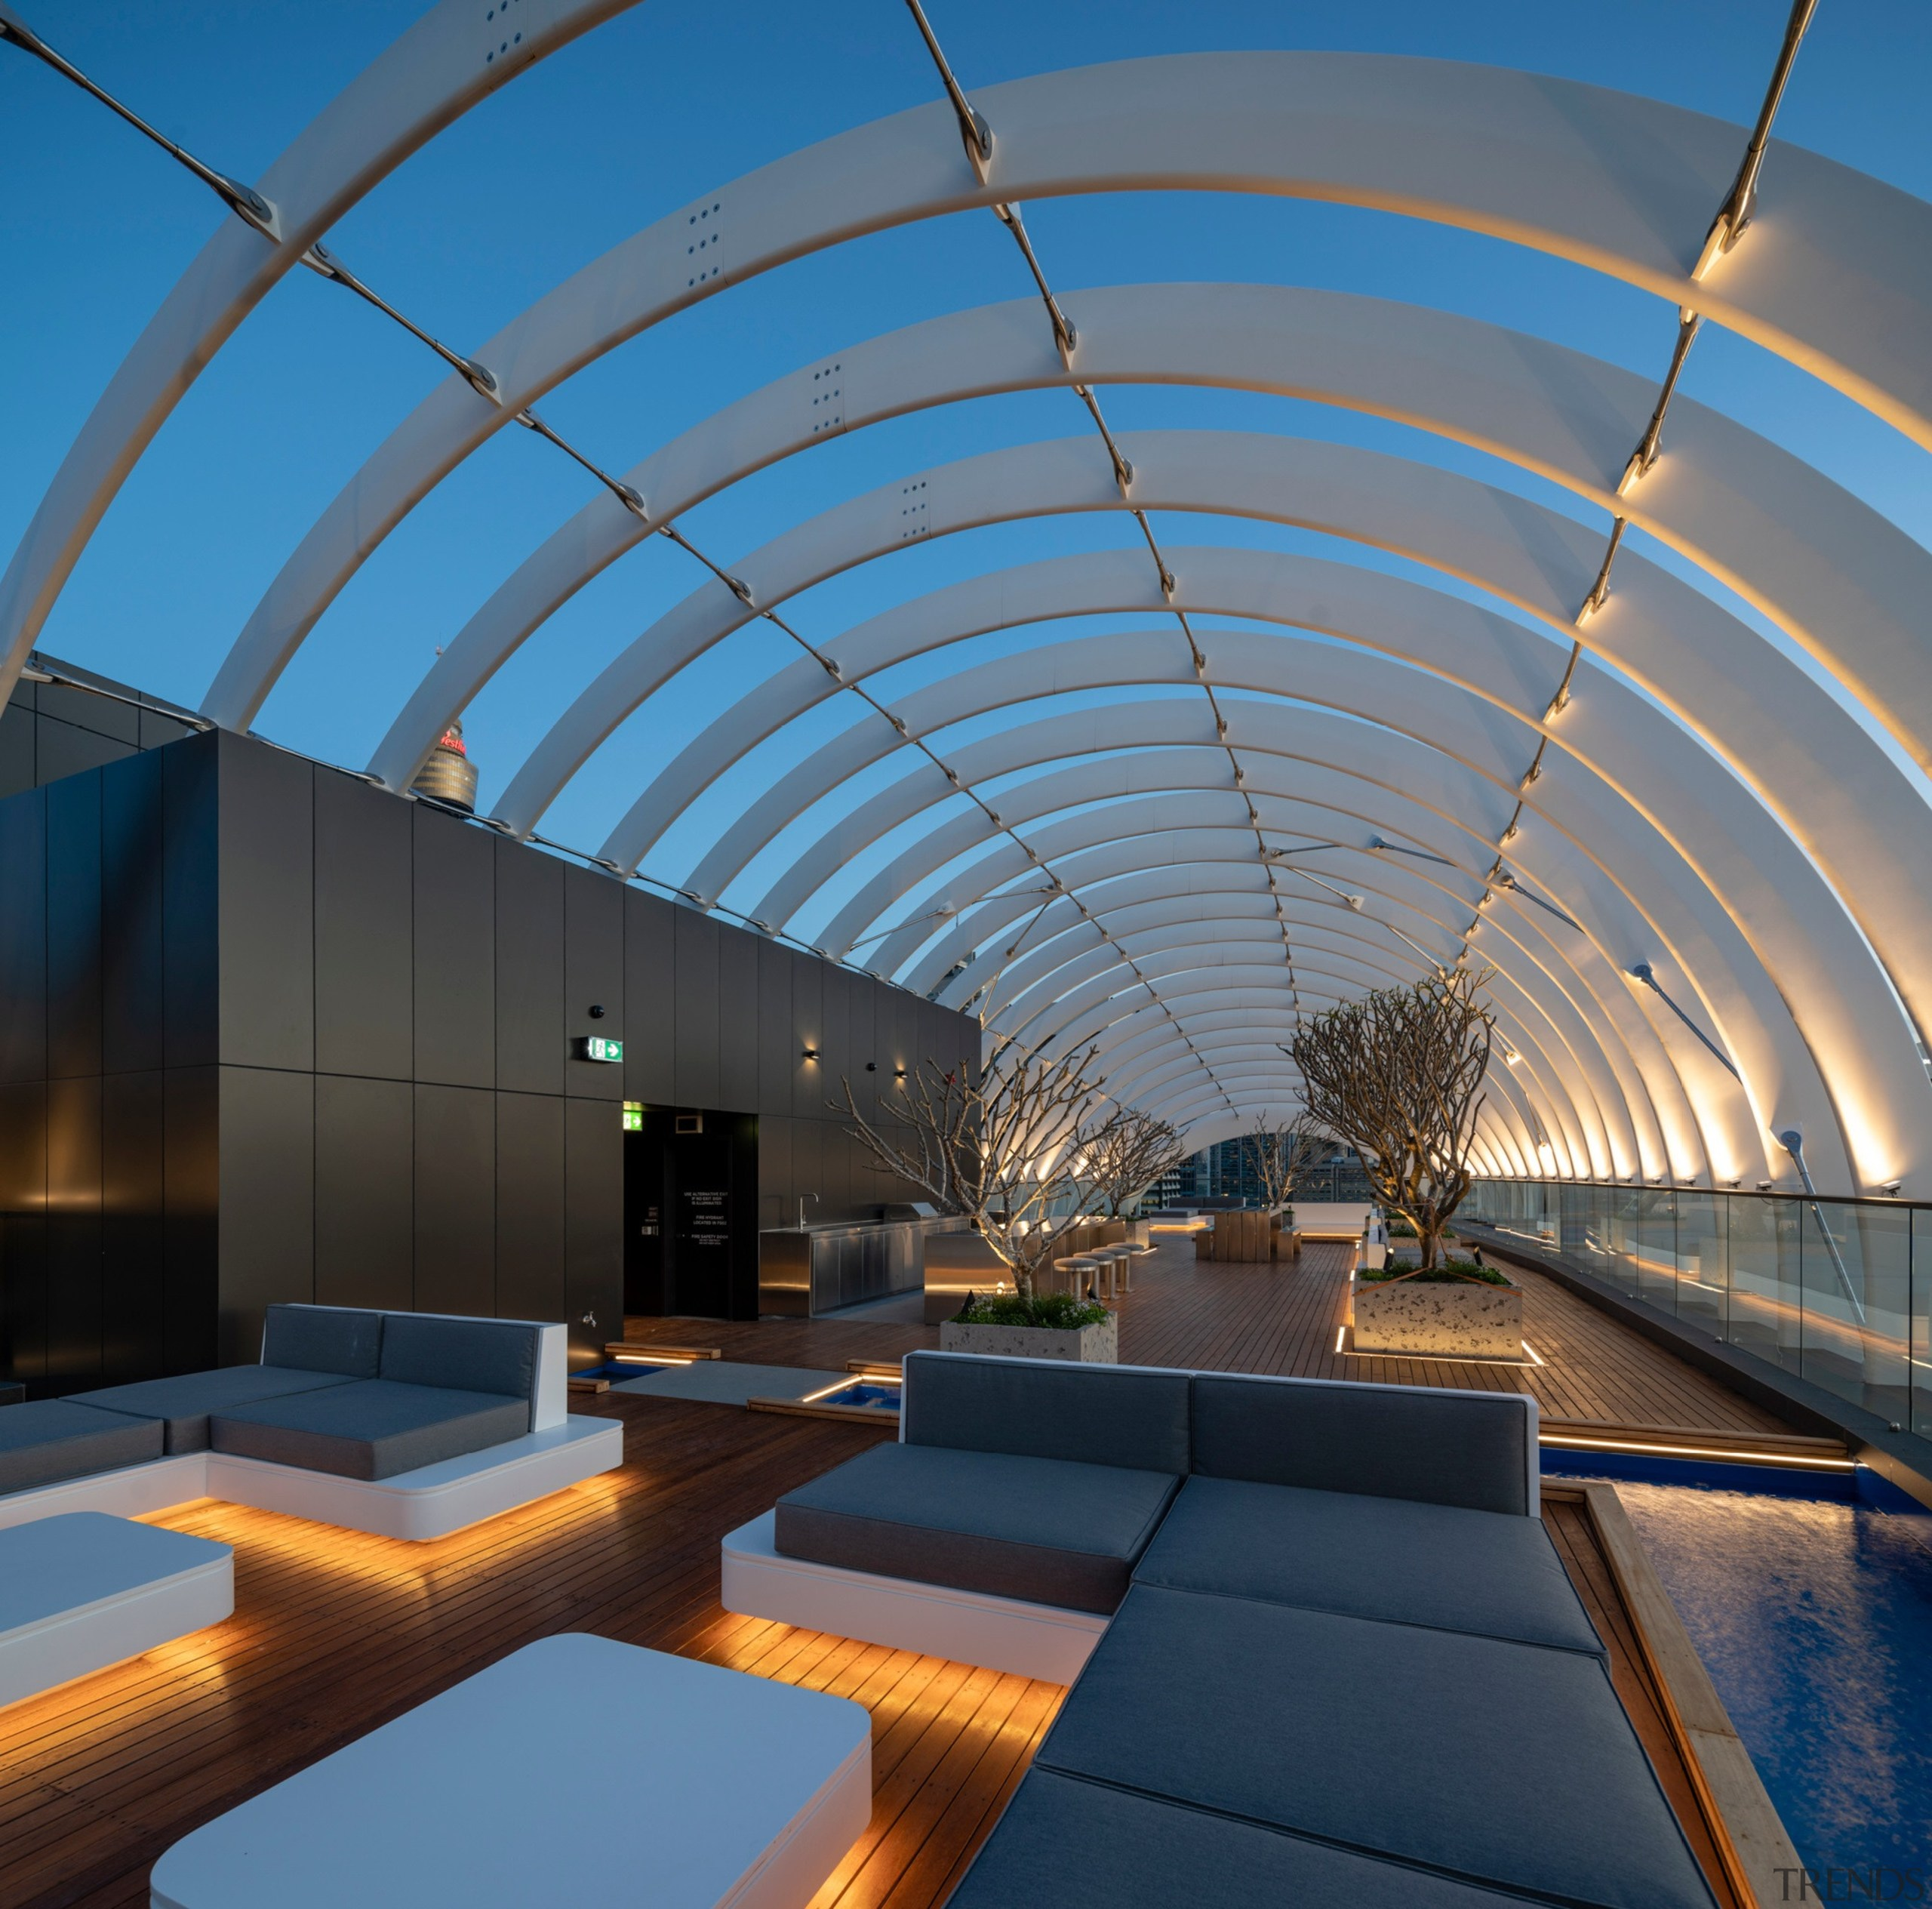 The rooftop Horizon Lounge has barbecue and bar architecture, building, daylighting, line, roof, sky, teal